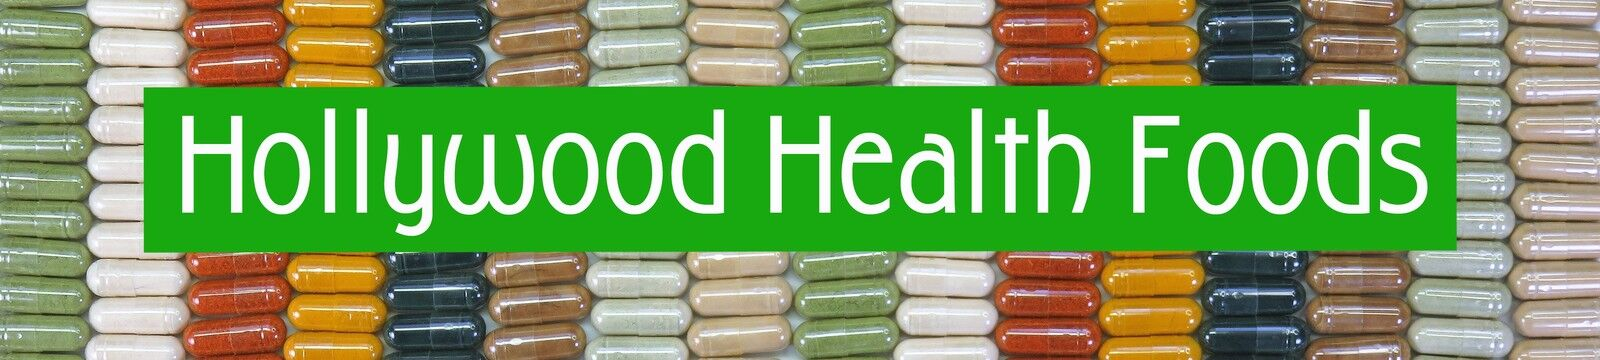 Hollywood Health Foods